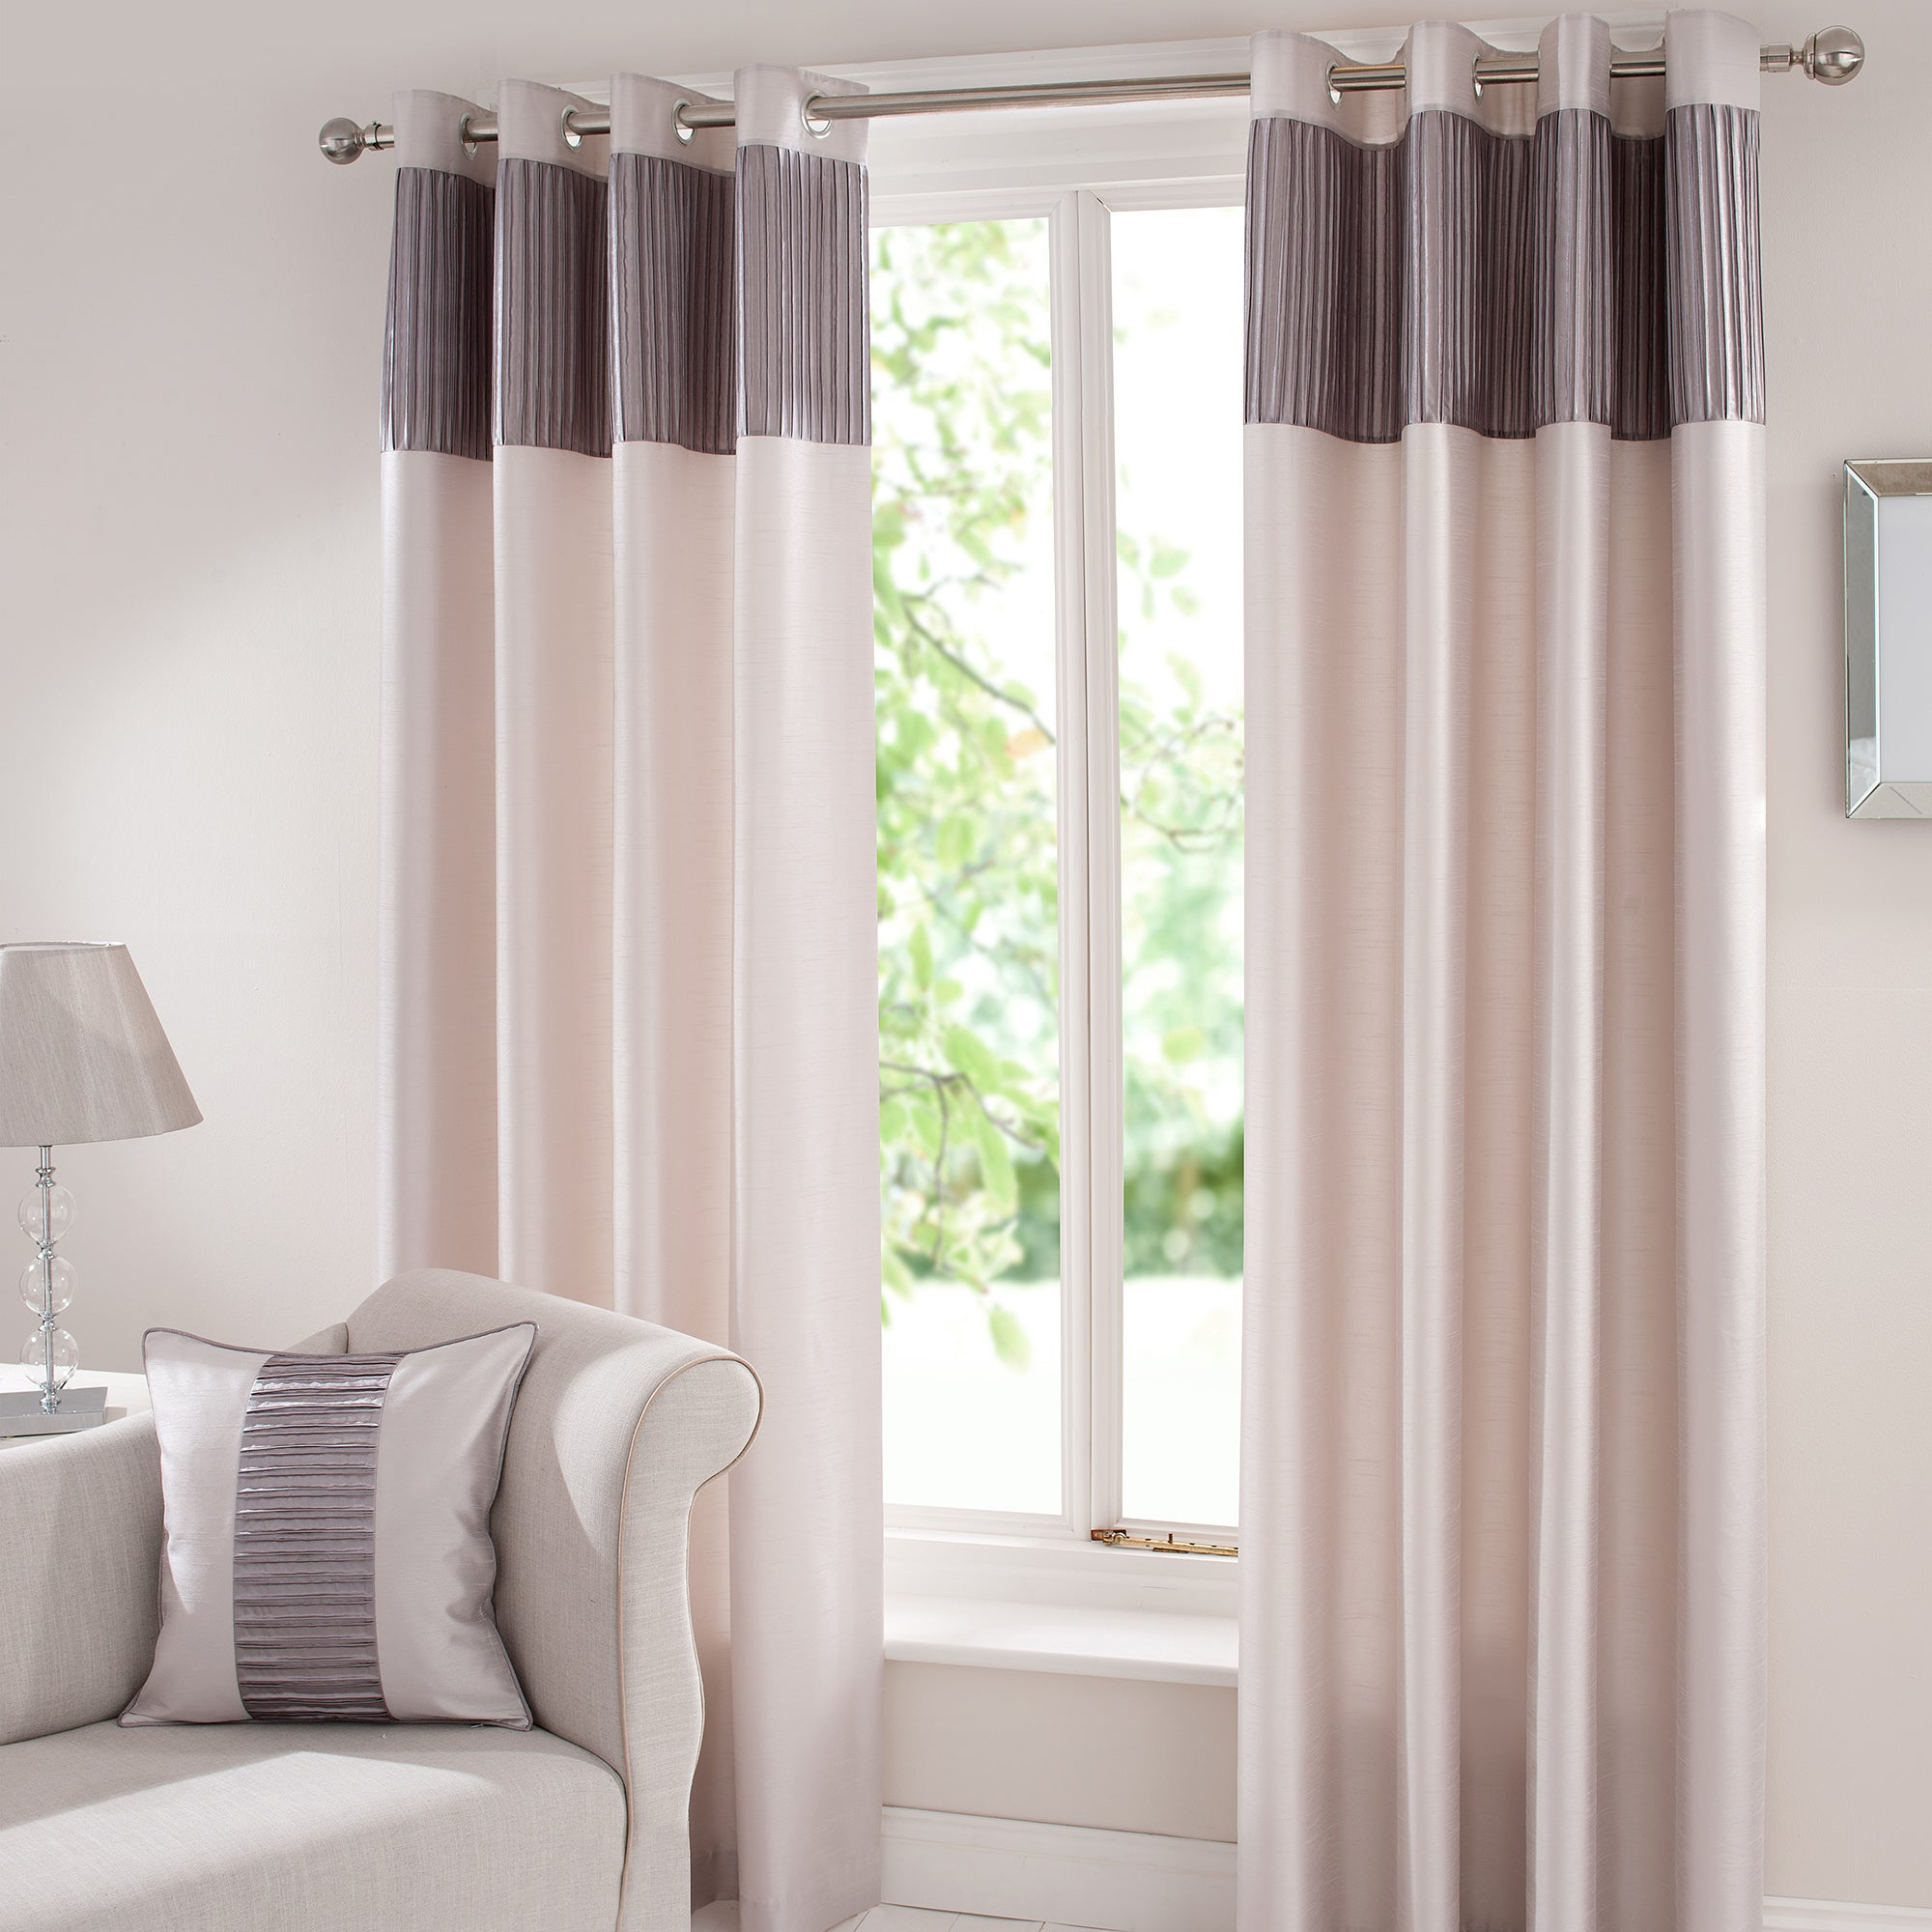 silver montreal lined eyelet curtains dunelm. Black Bedroom Furniture Sets. Home Design Ideas